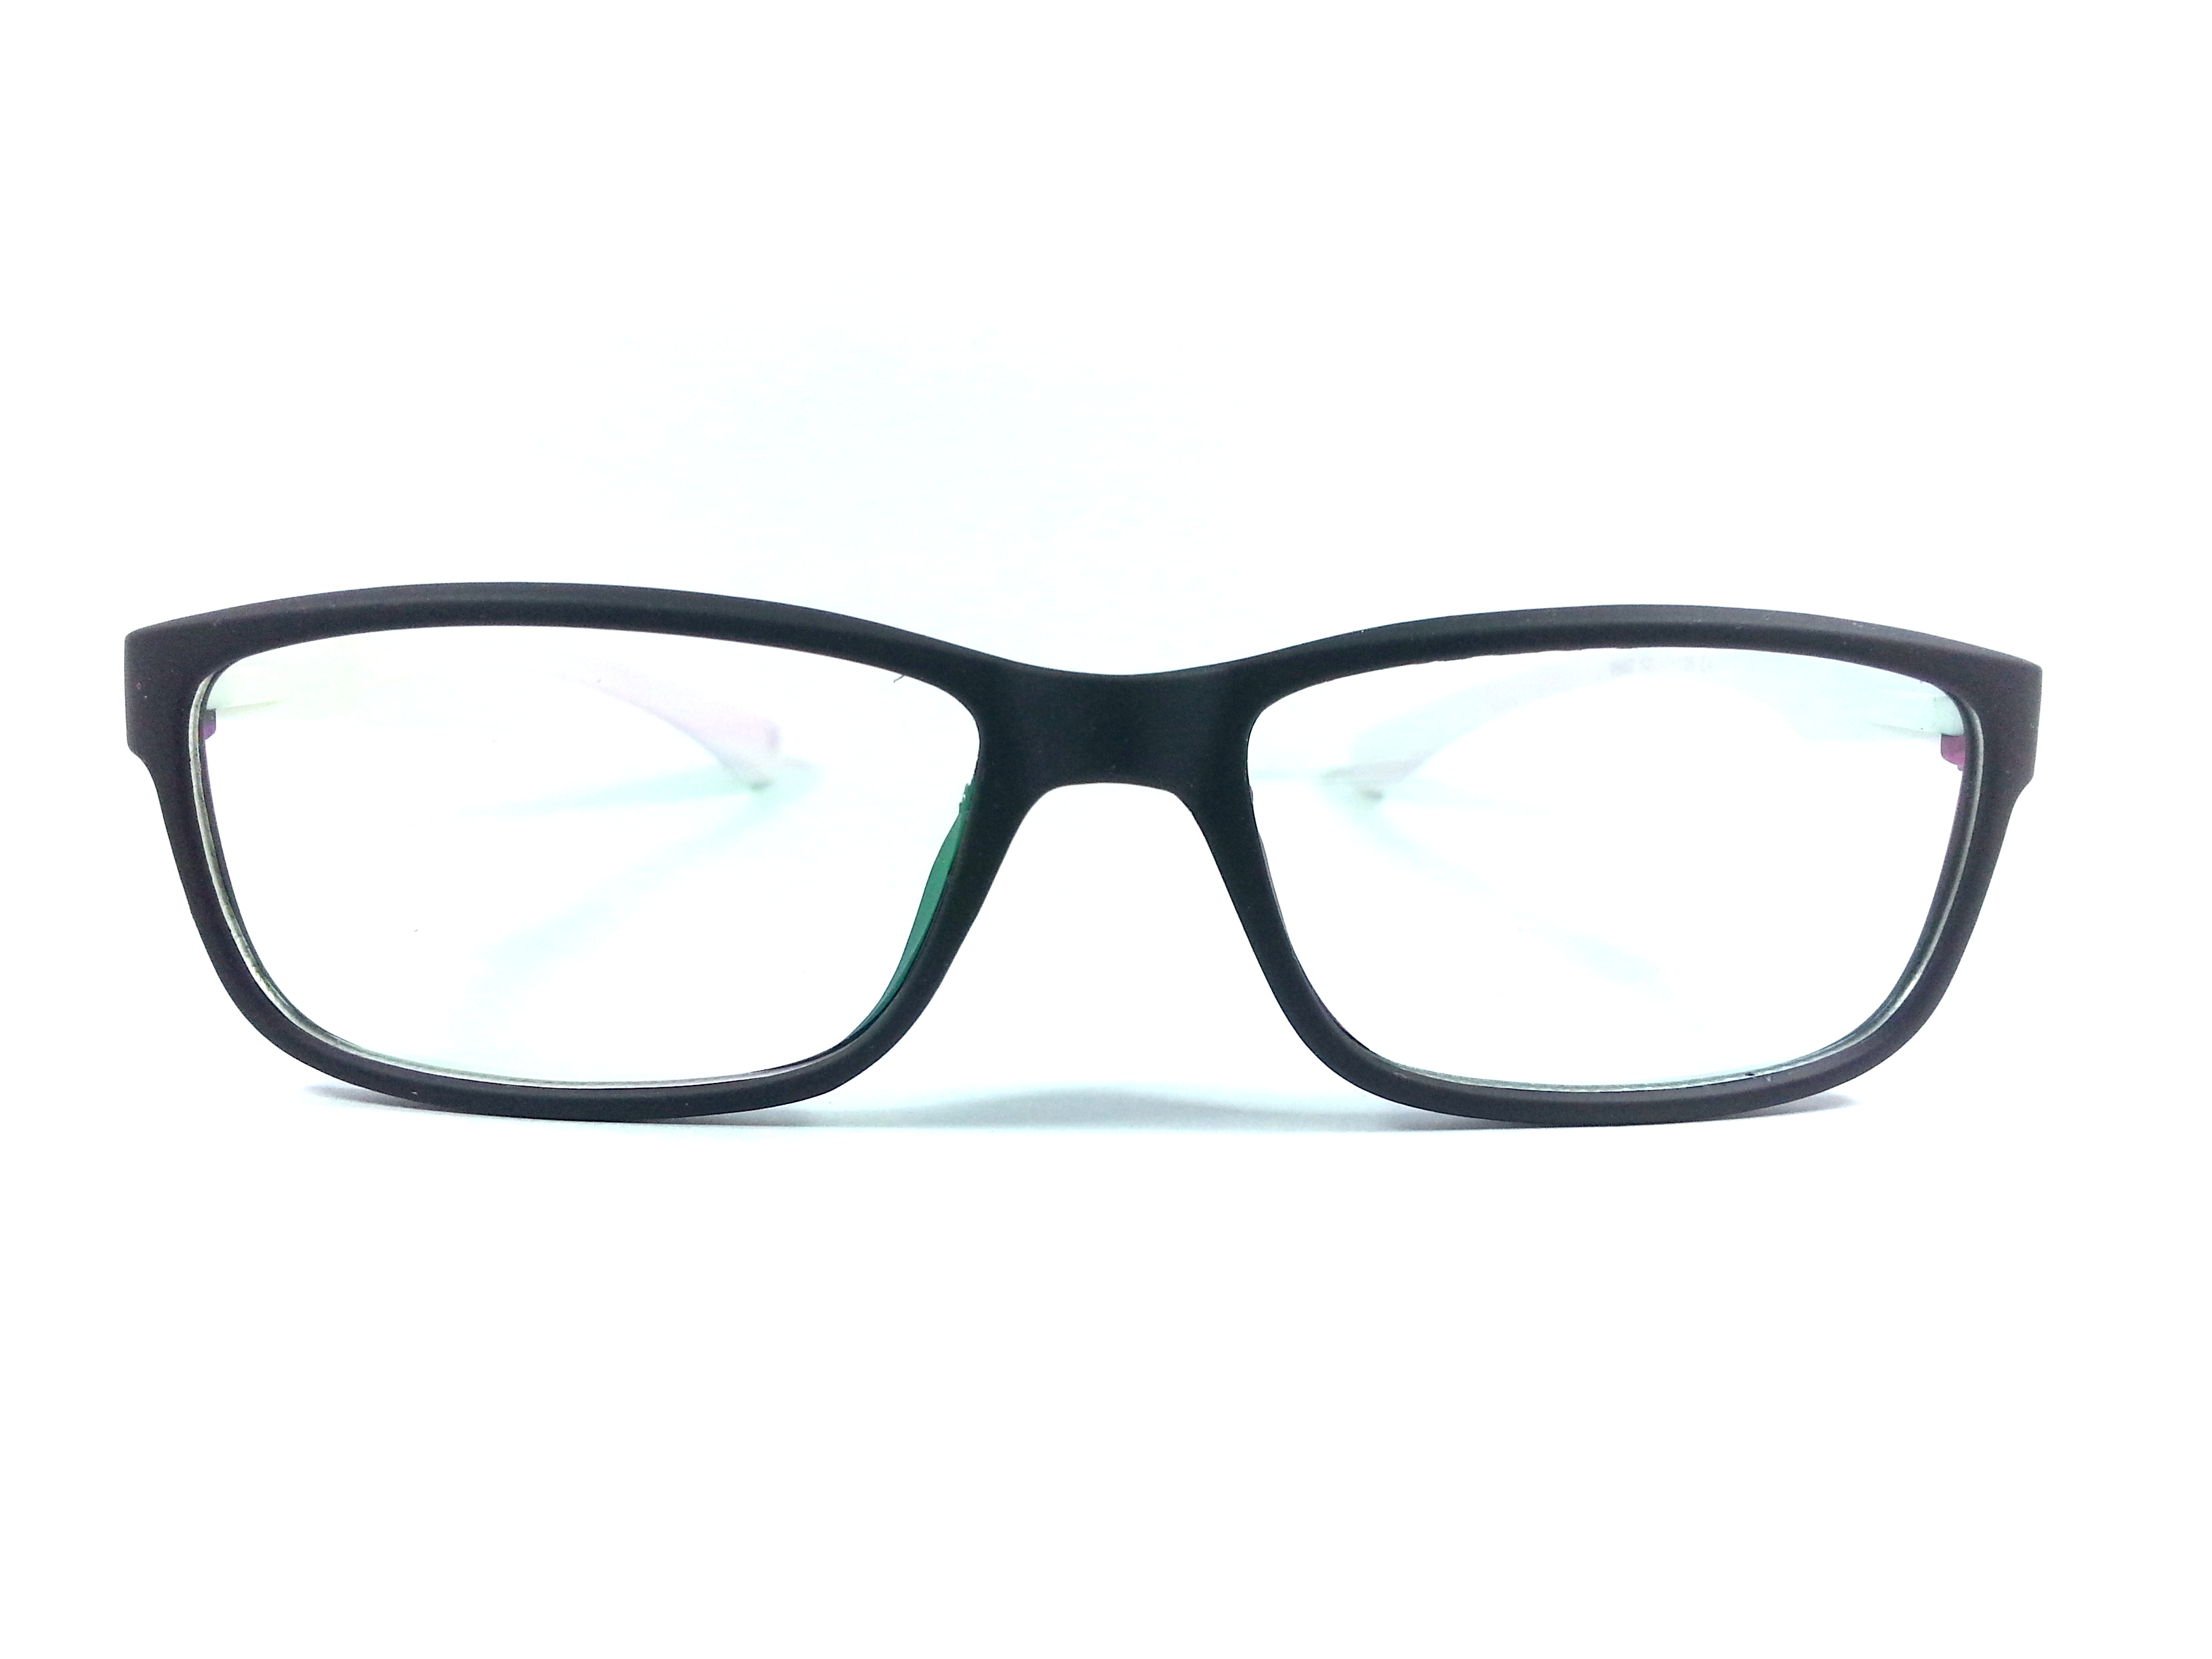 spectacle frames matte finish unbreakable black with white ...